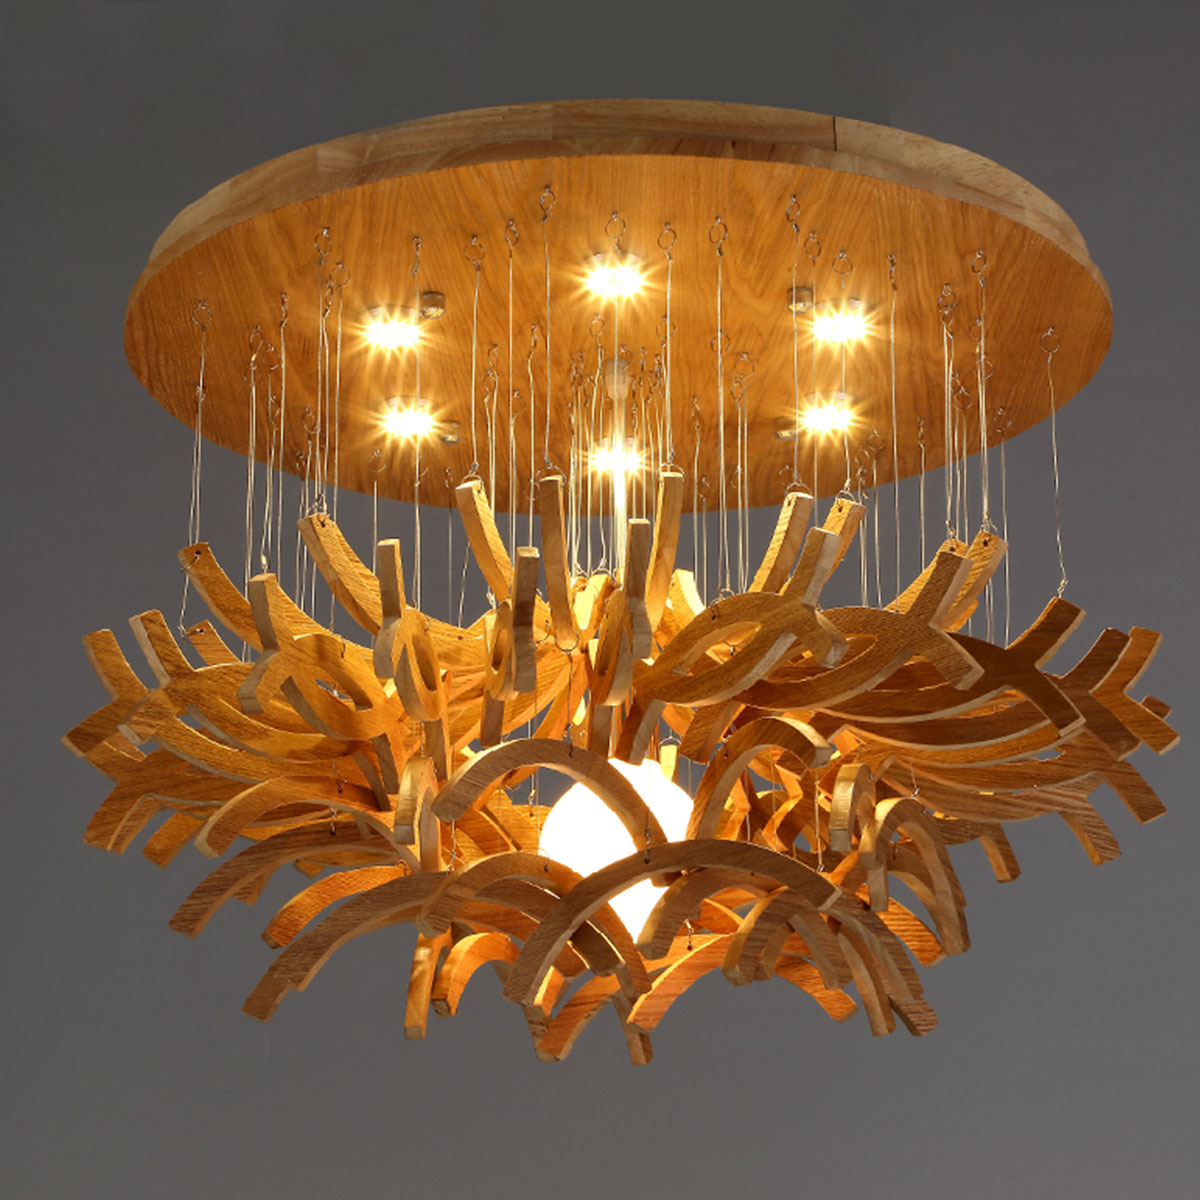 Wood Chandeliers For Dining Room: Modern Chandelier Northern European Wood Chandelier Wooden